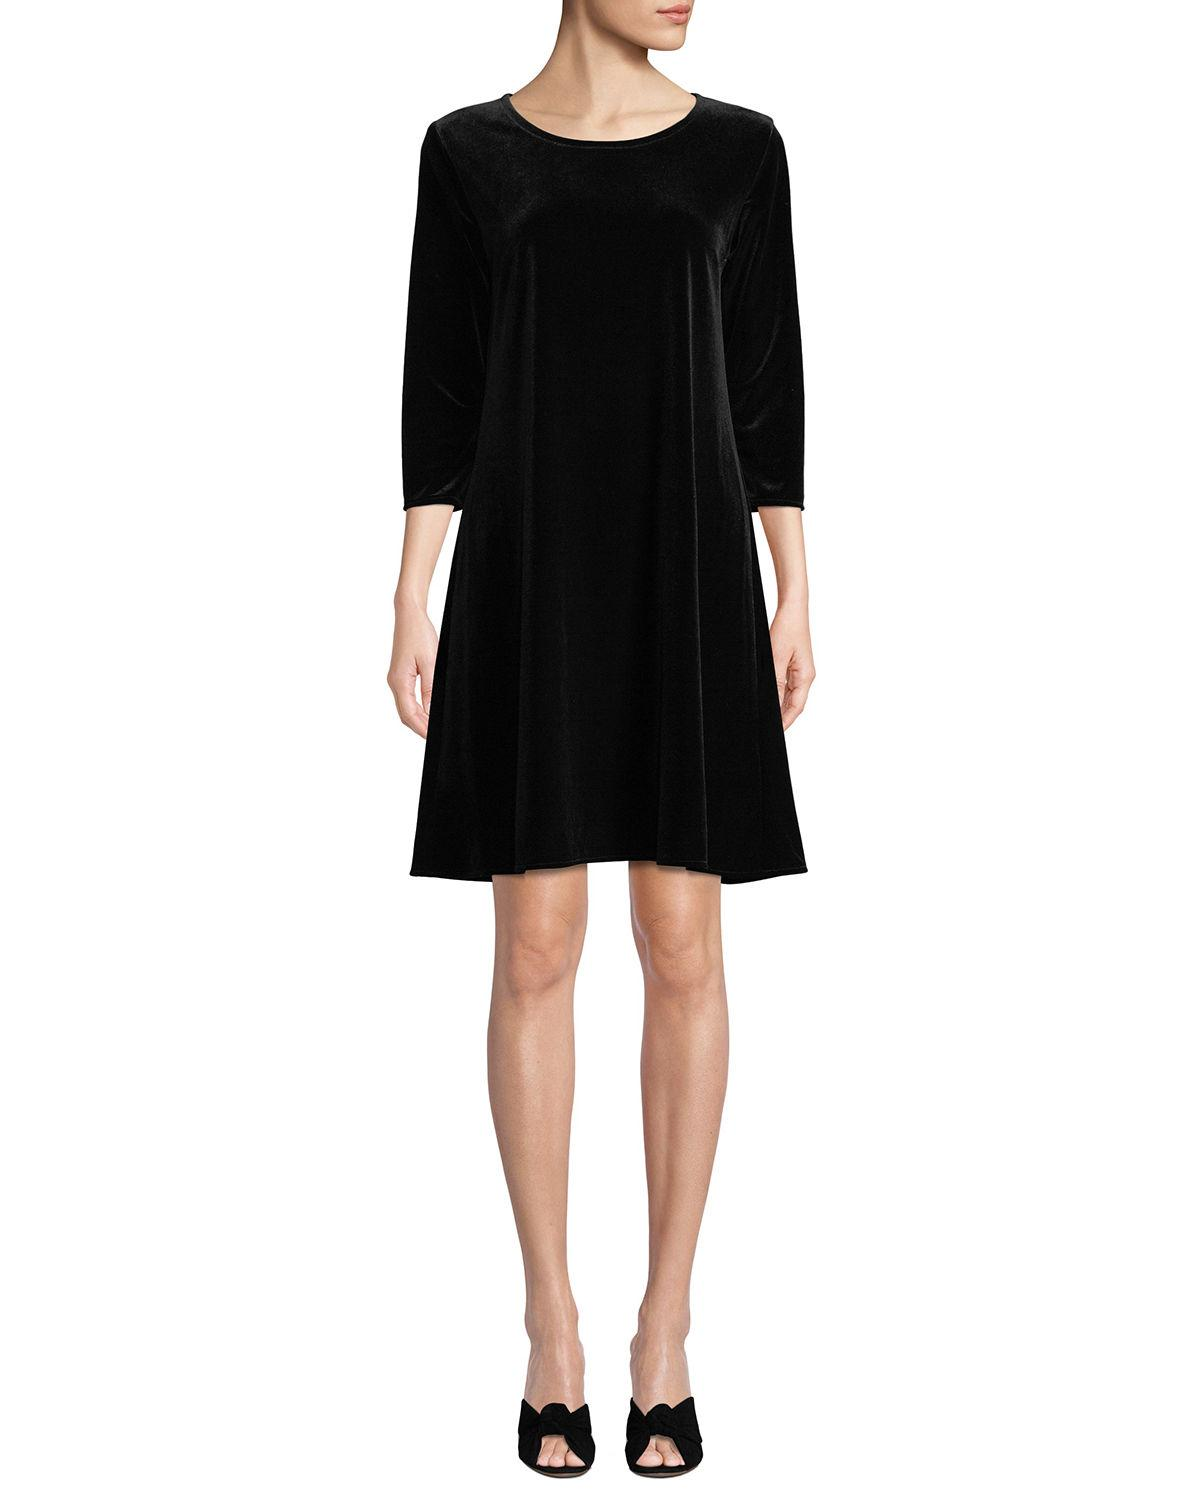 c18bf9b2221 EXCLUSIVELY AT NEIMAN MARCUS Caroline Rose dress in stretch-velvet. Round  neckline. 3 4 sleeves. A-line silhouette. Easy fit. Pullover style.